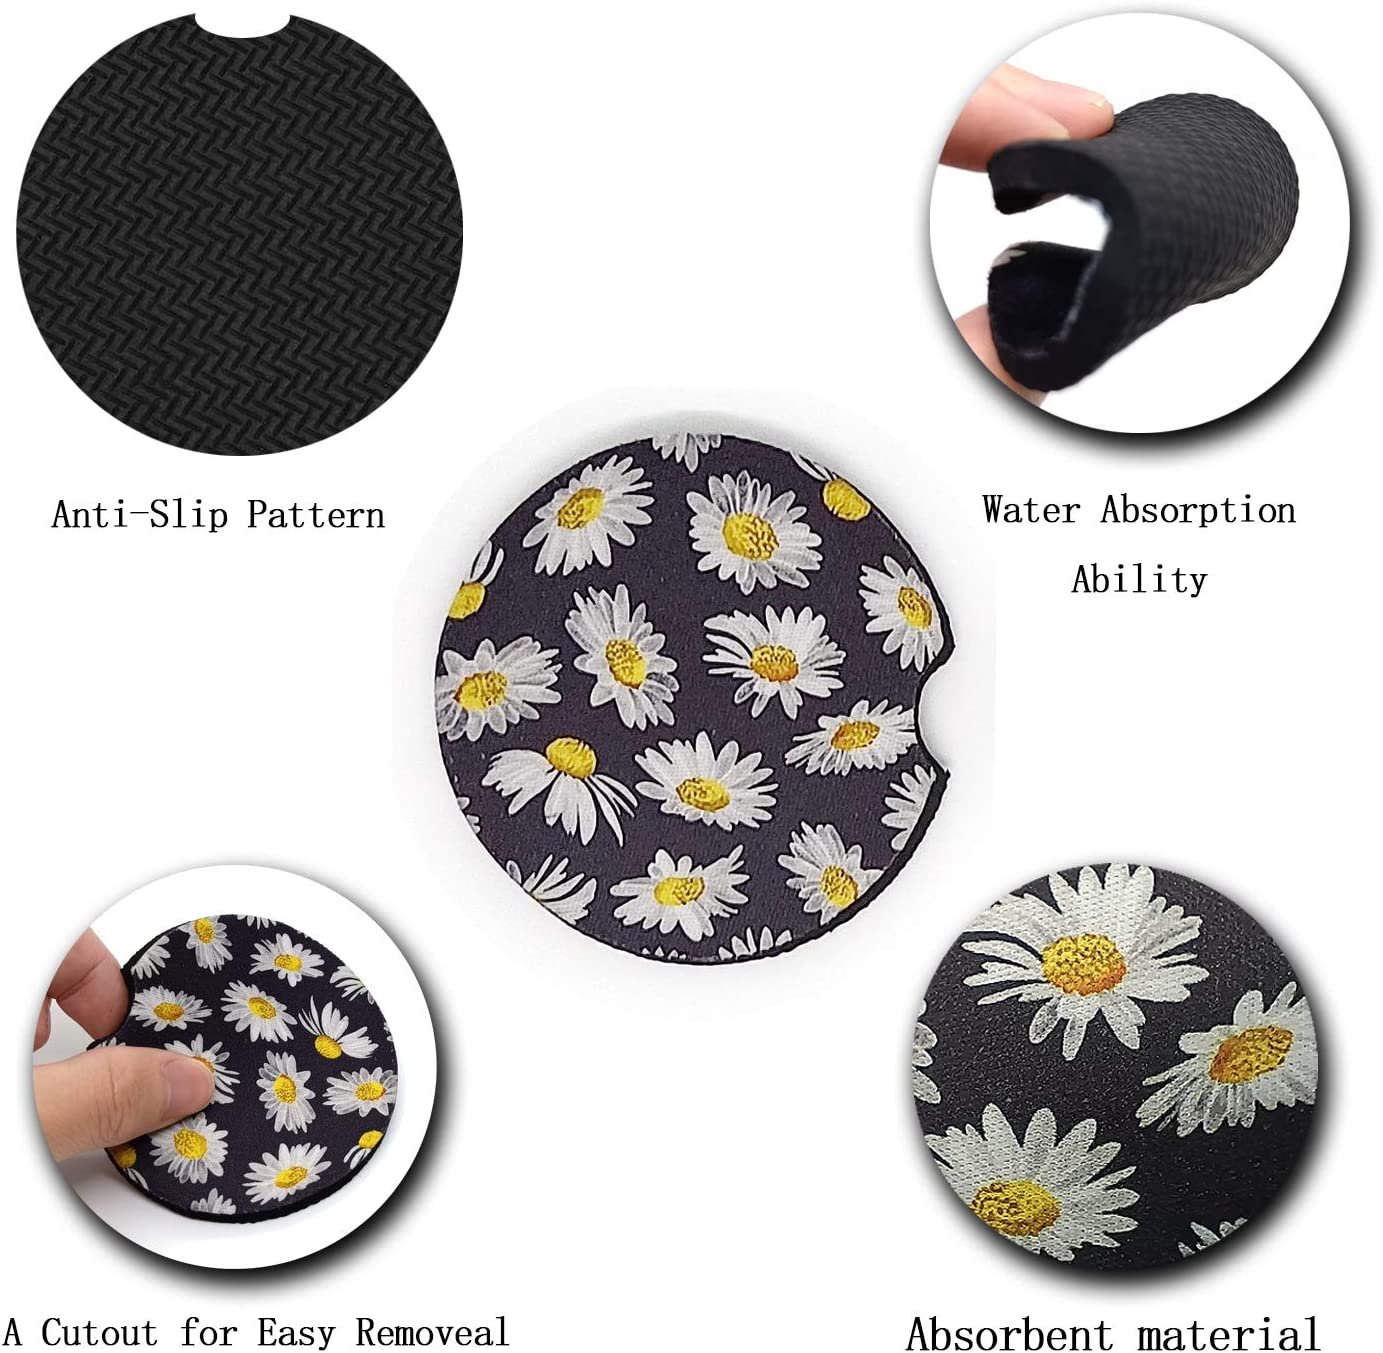 Auto Accessories for Women /& Lady,Pack of 2 Car Coasters for Drinks Absorbent Leopard-1 ar Cup Holder Coasters for Your Car with Fingertip Grip Cute Car Coasters for Women